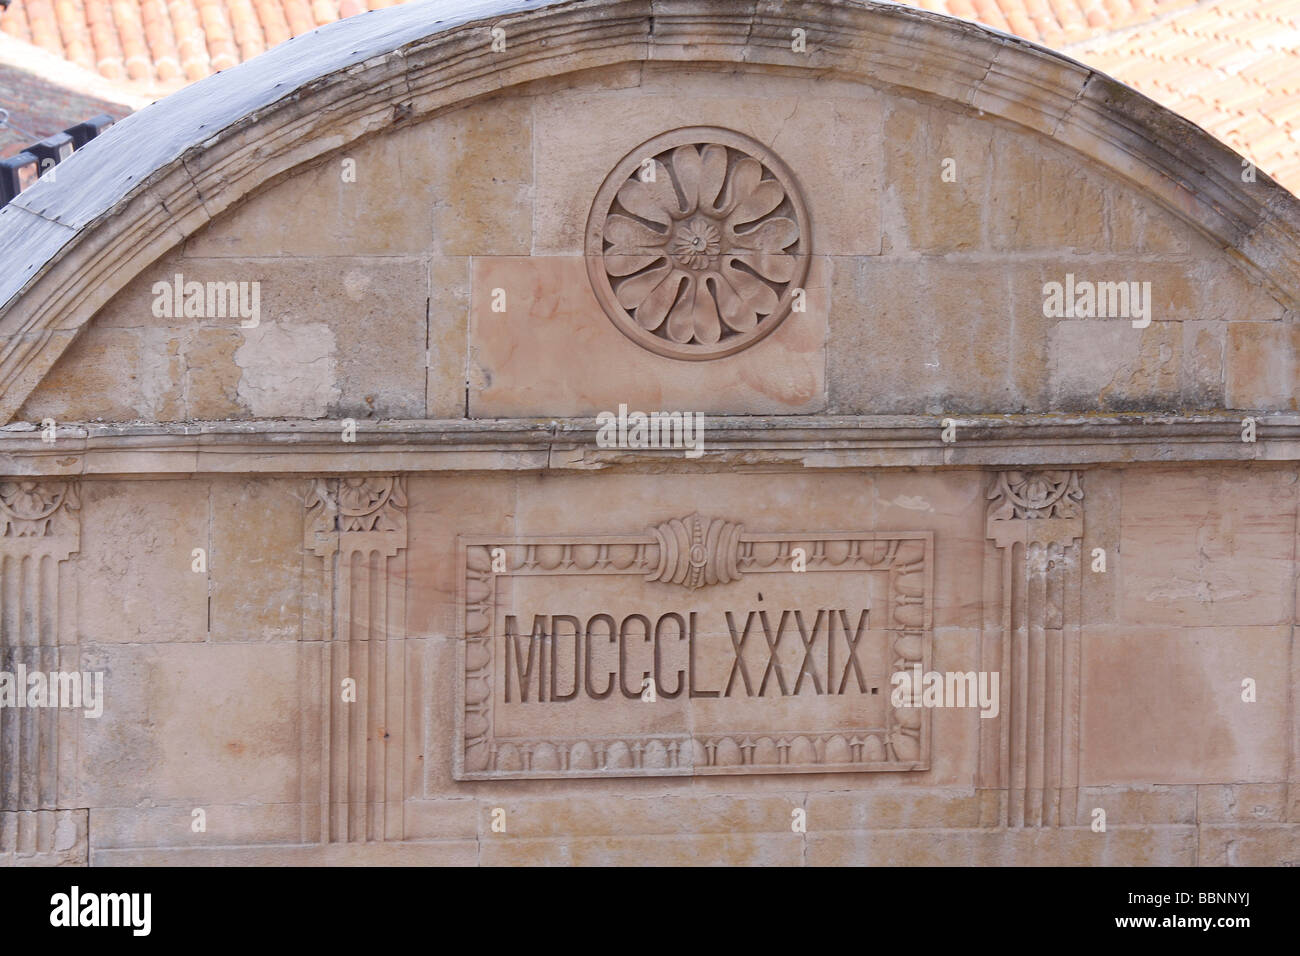 Roman Numerals On A Building Wall Dating Its Construction